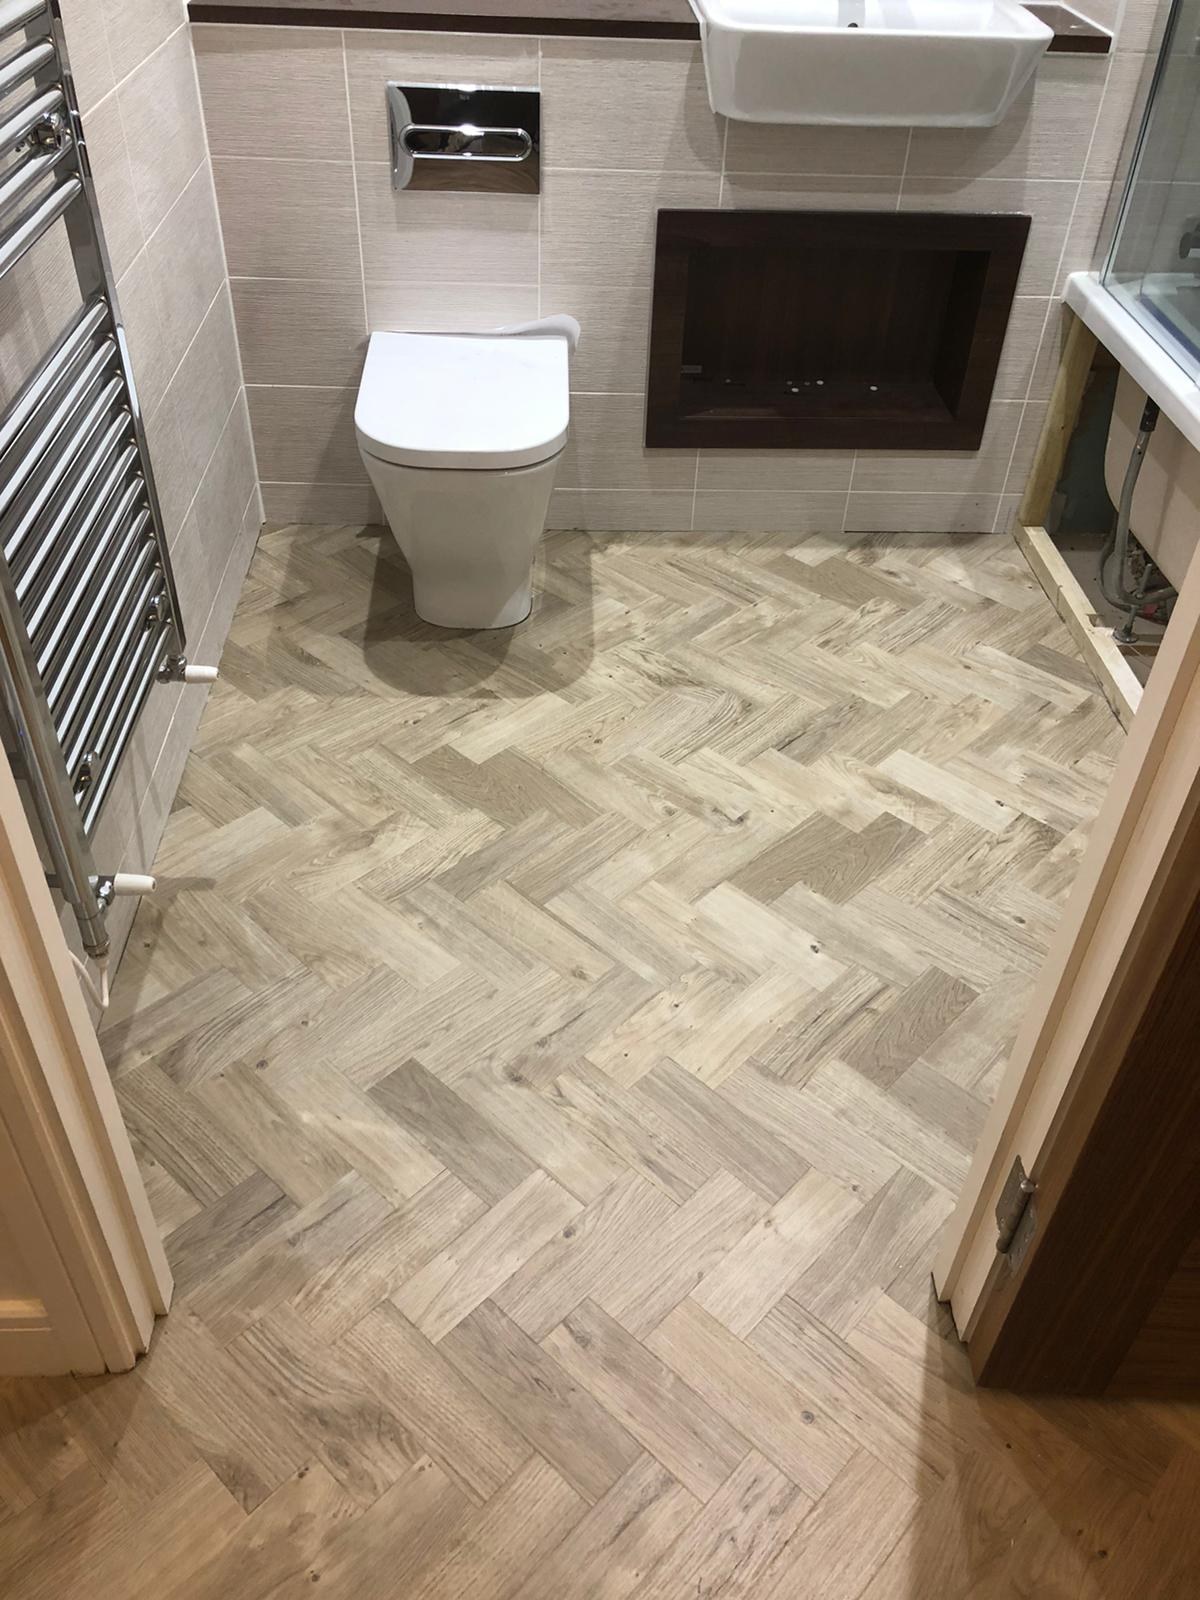 To supply & install Amtico Spacia Sun Bleached Oak luxury vinyl flooring in Kilburn 8